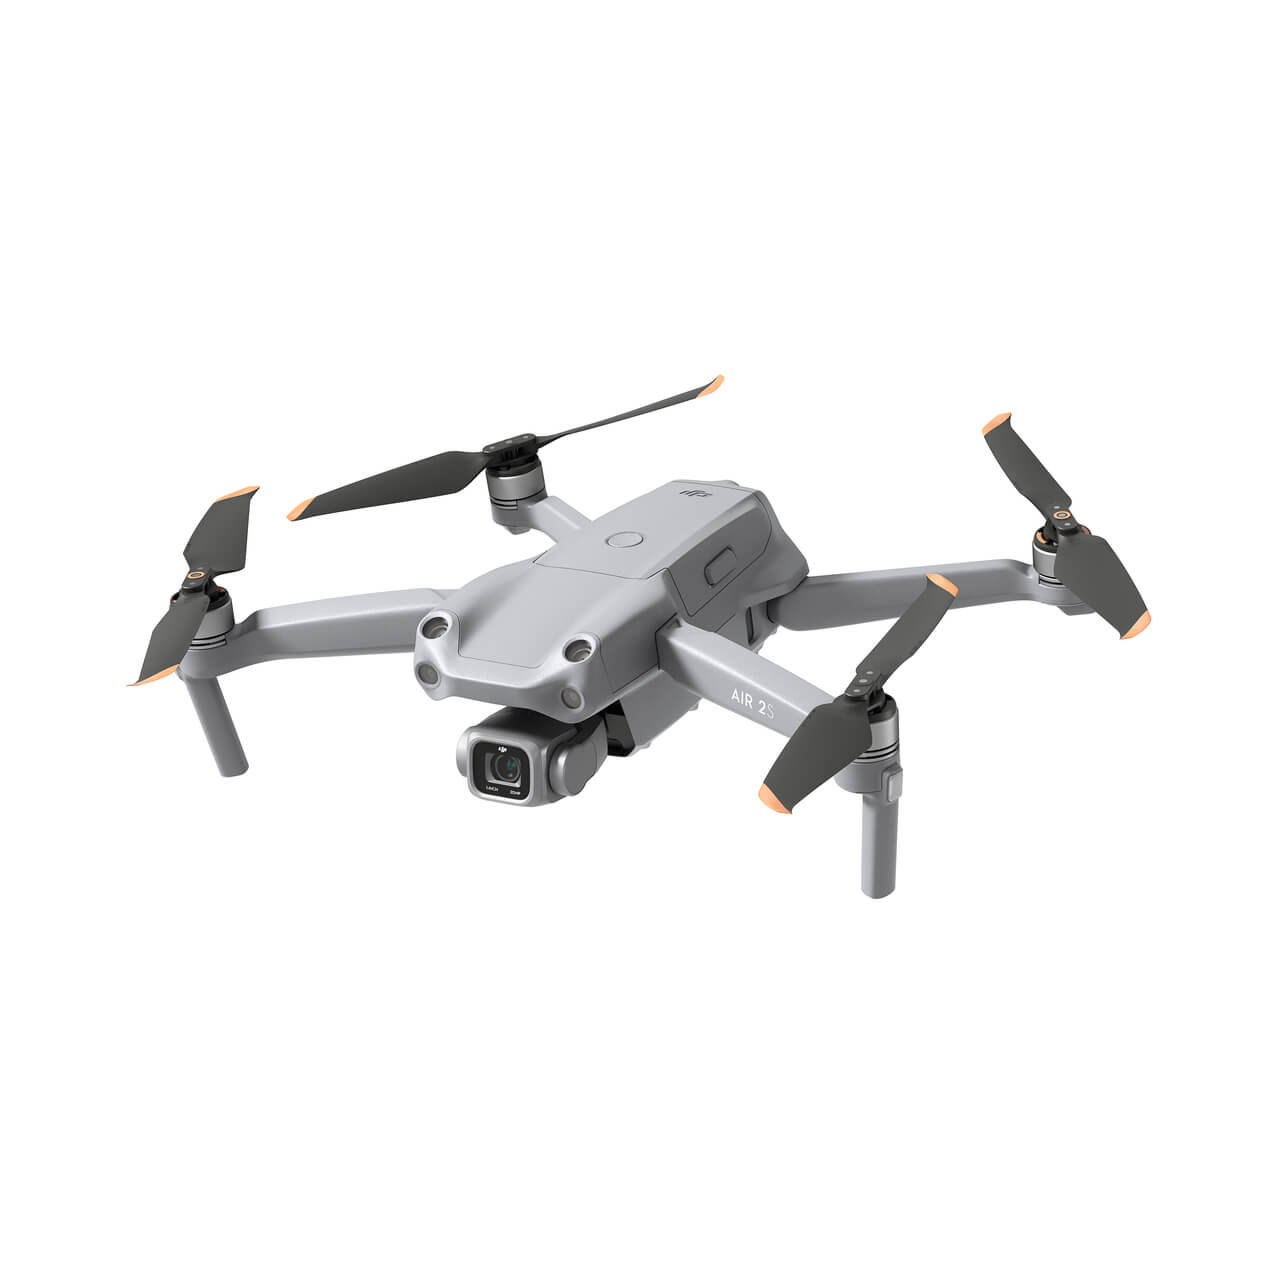 Dji - Air 2S Drone - All In One